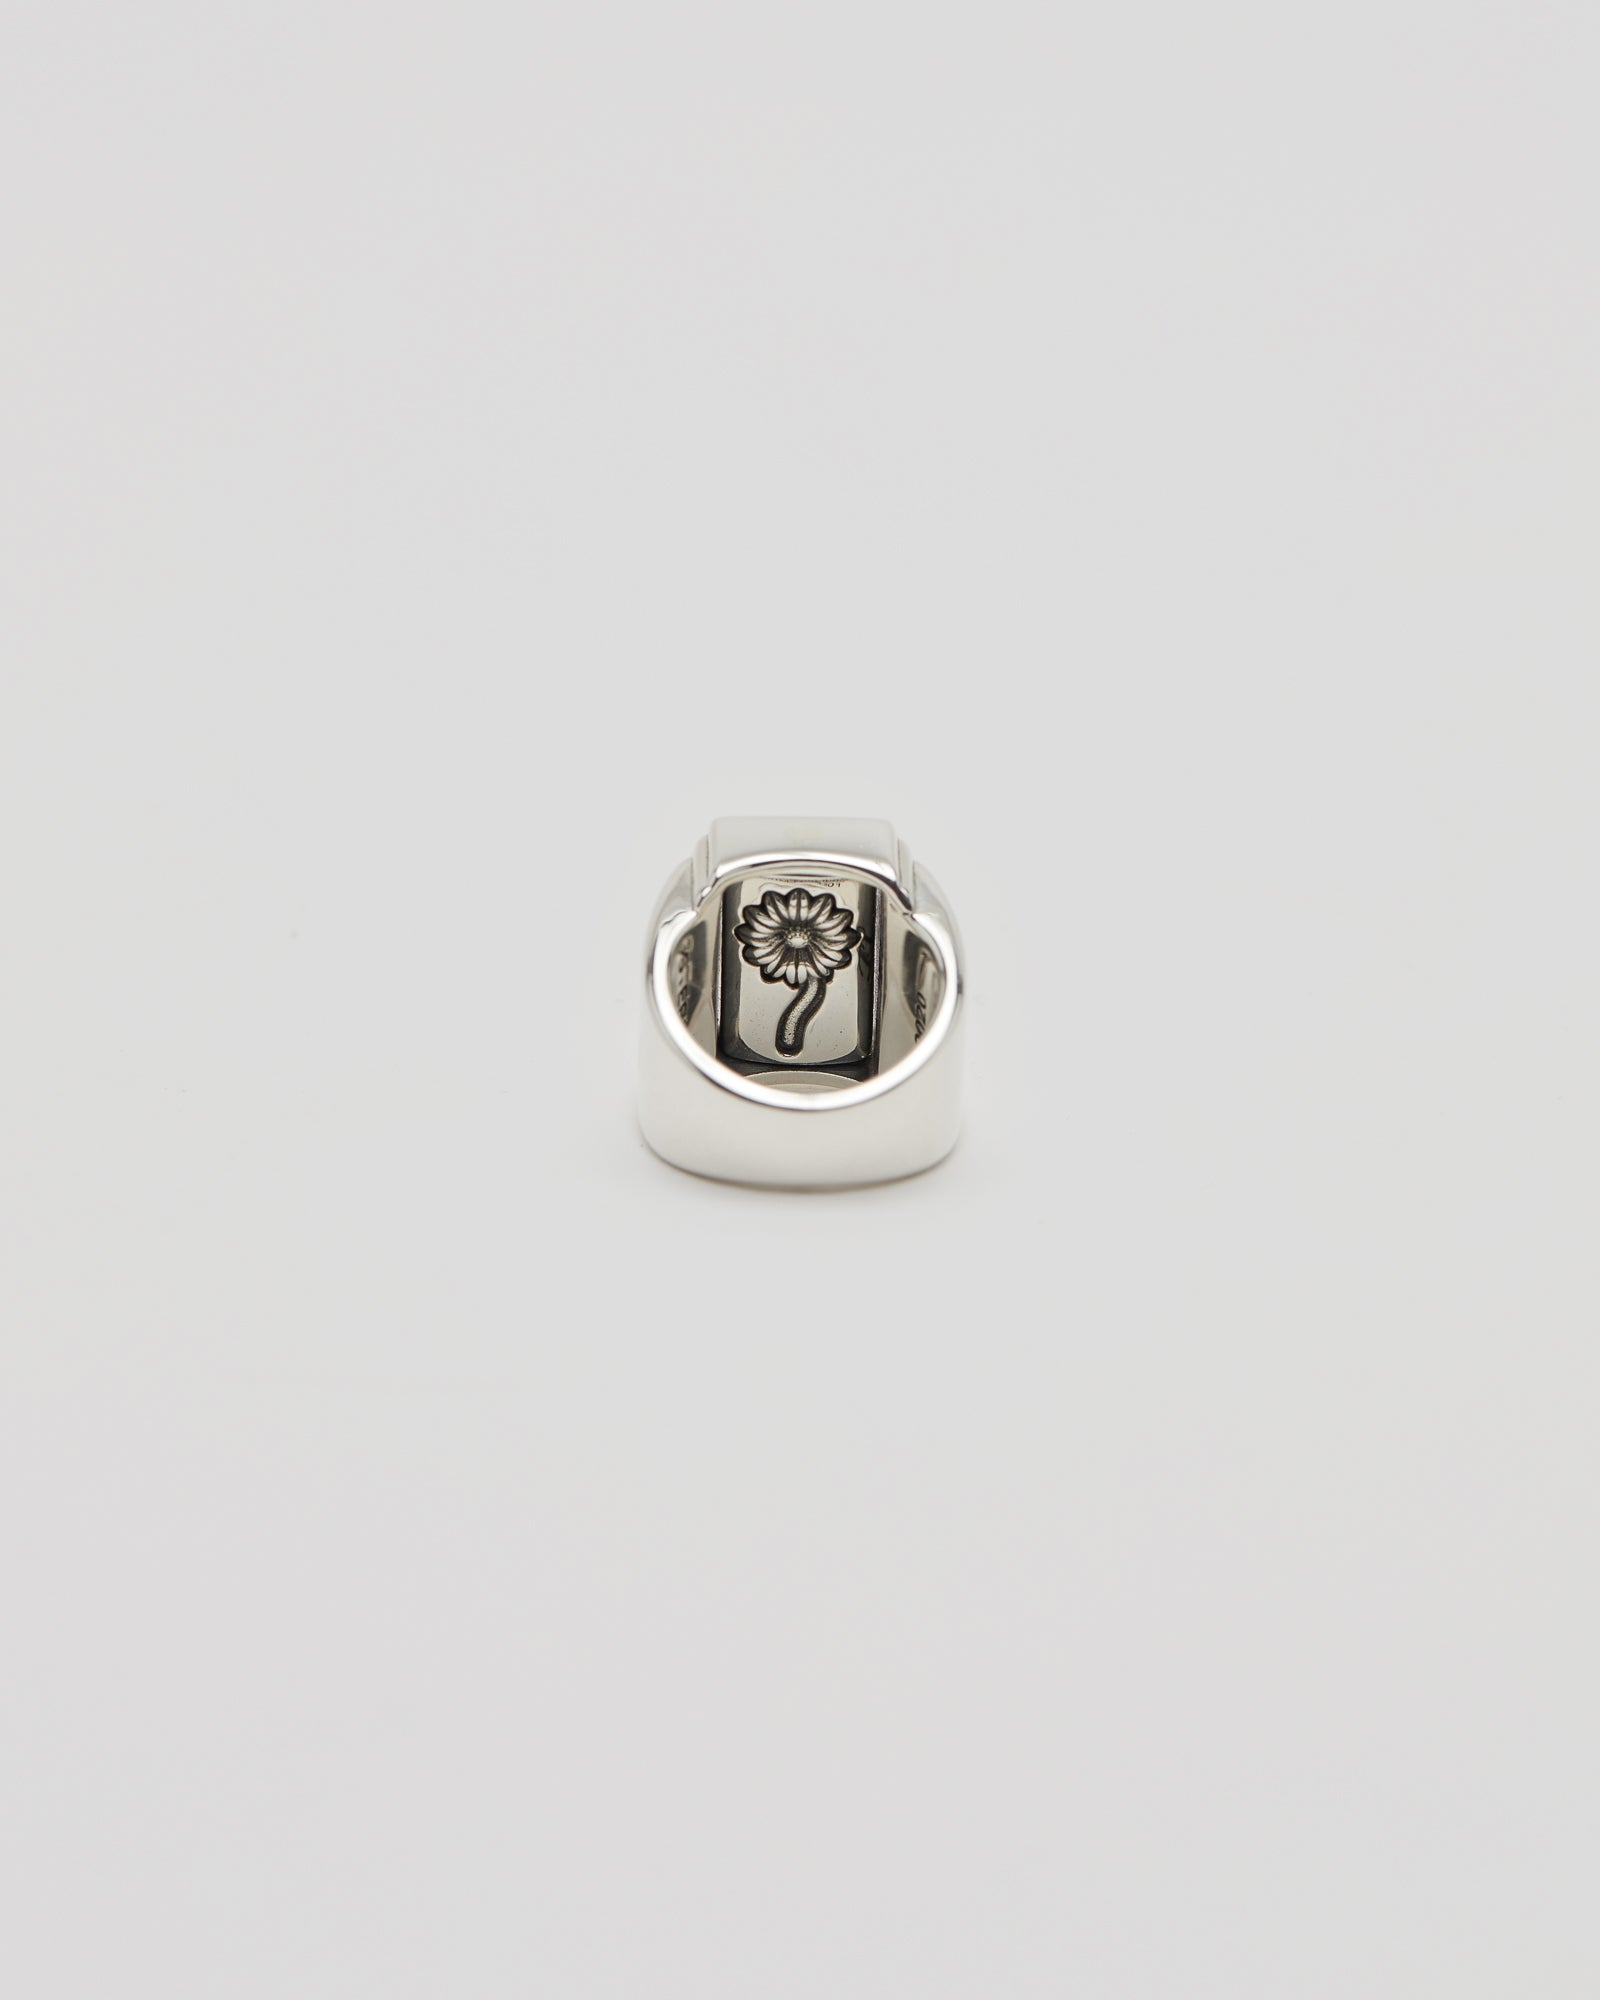 GDFHT x Good Art Hlywd, Hippy Flip Tank Ring